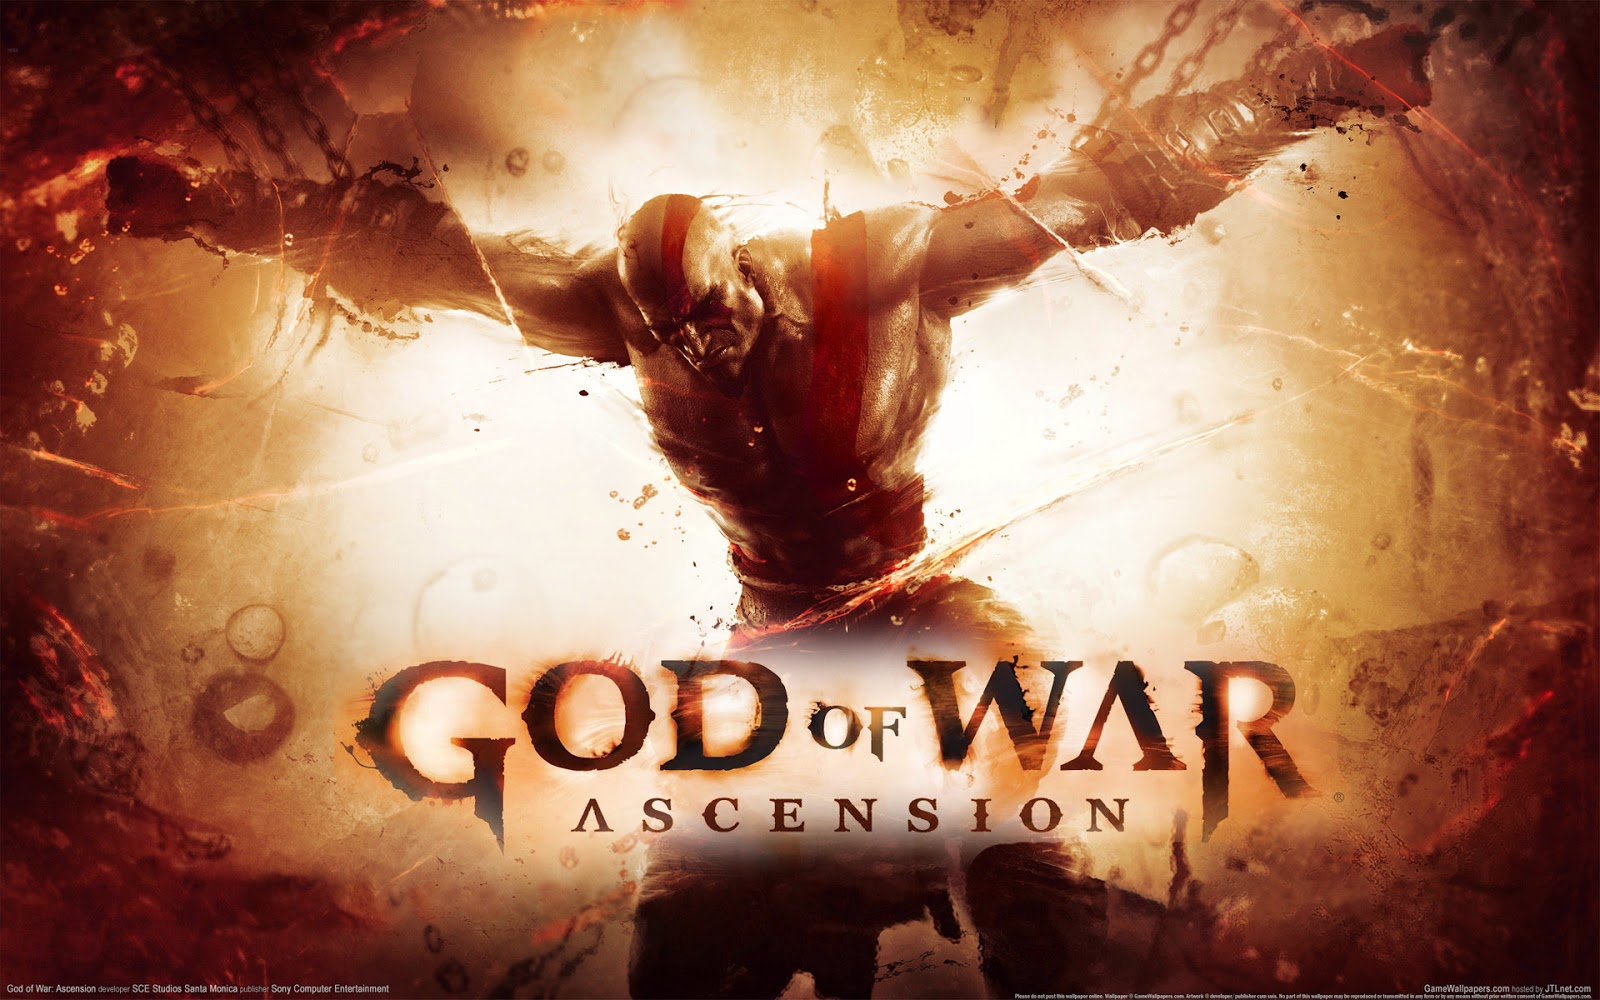 hades in god of war ascension wallpapers - HD Background God Of War GOW Ascension Hades Art